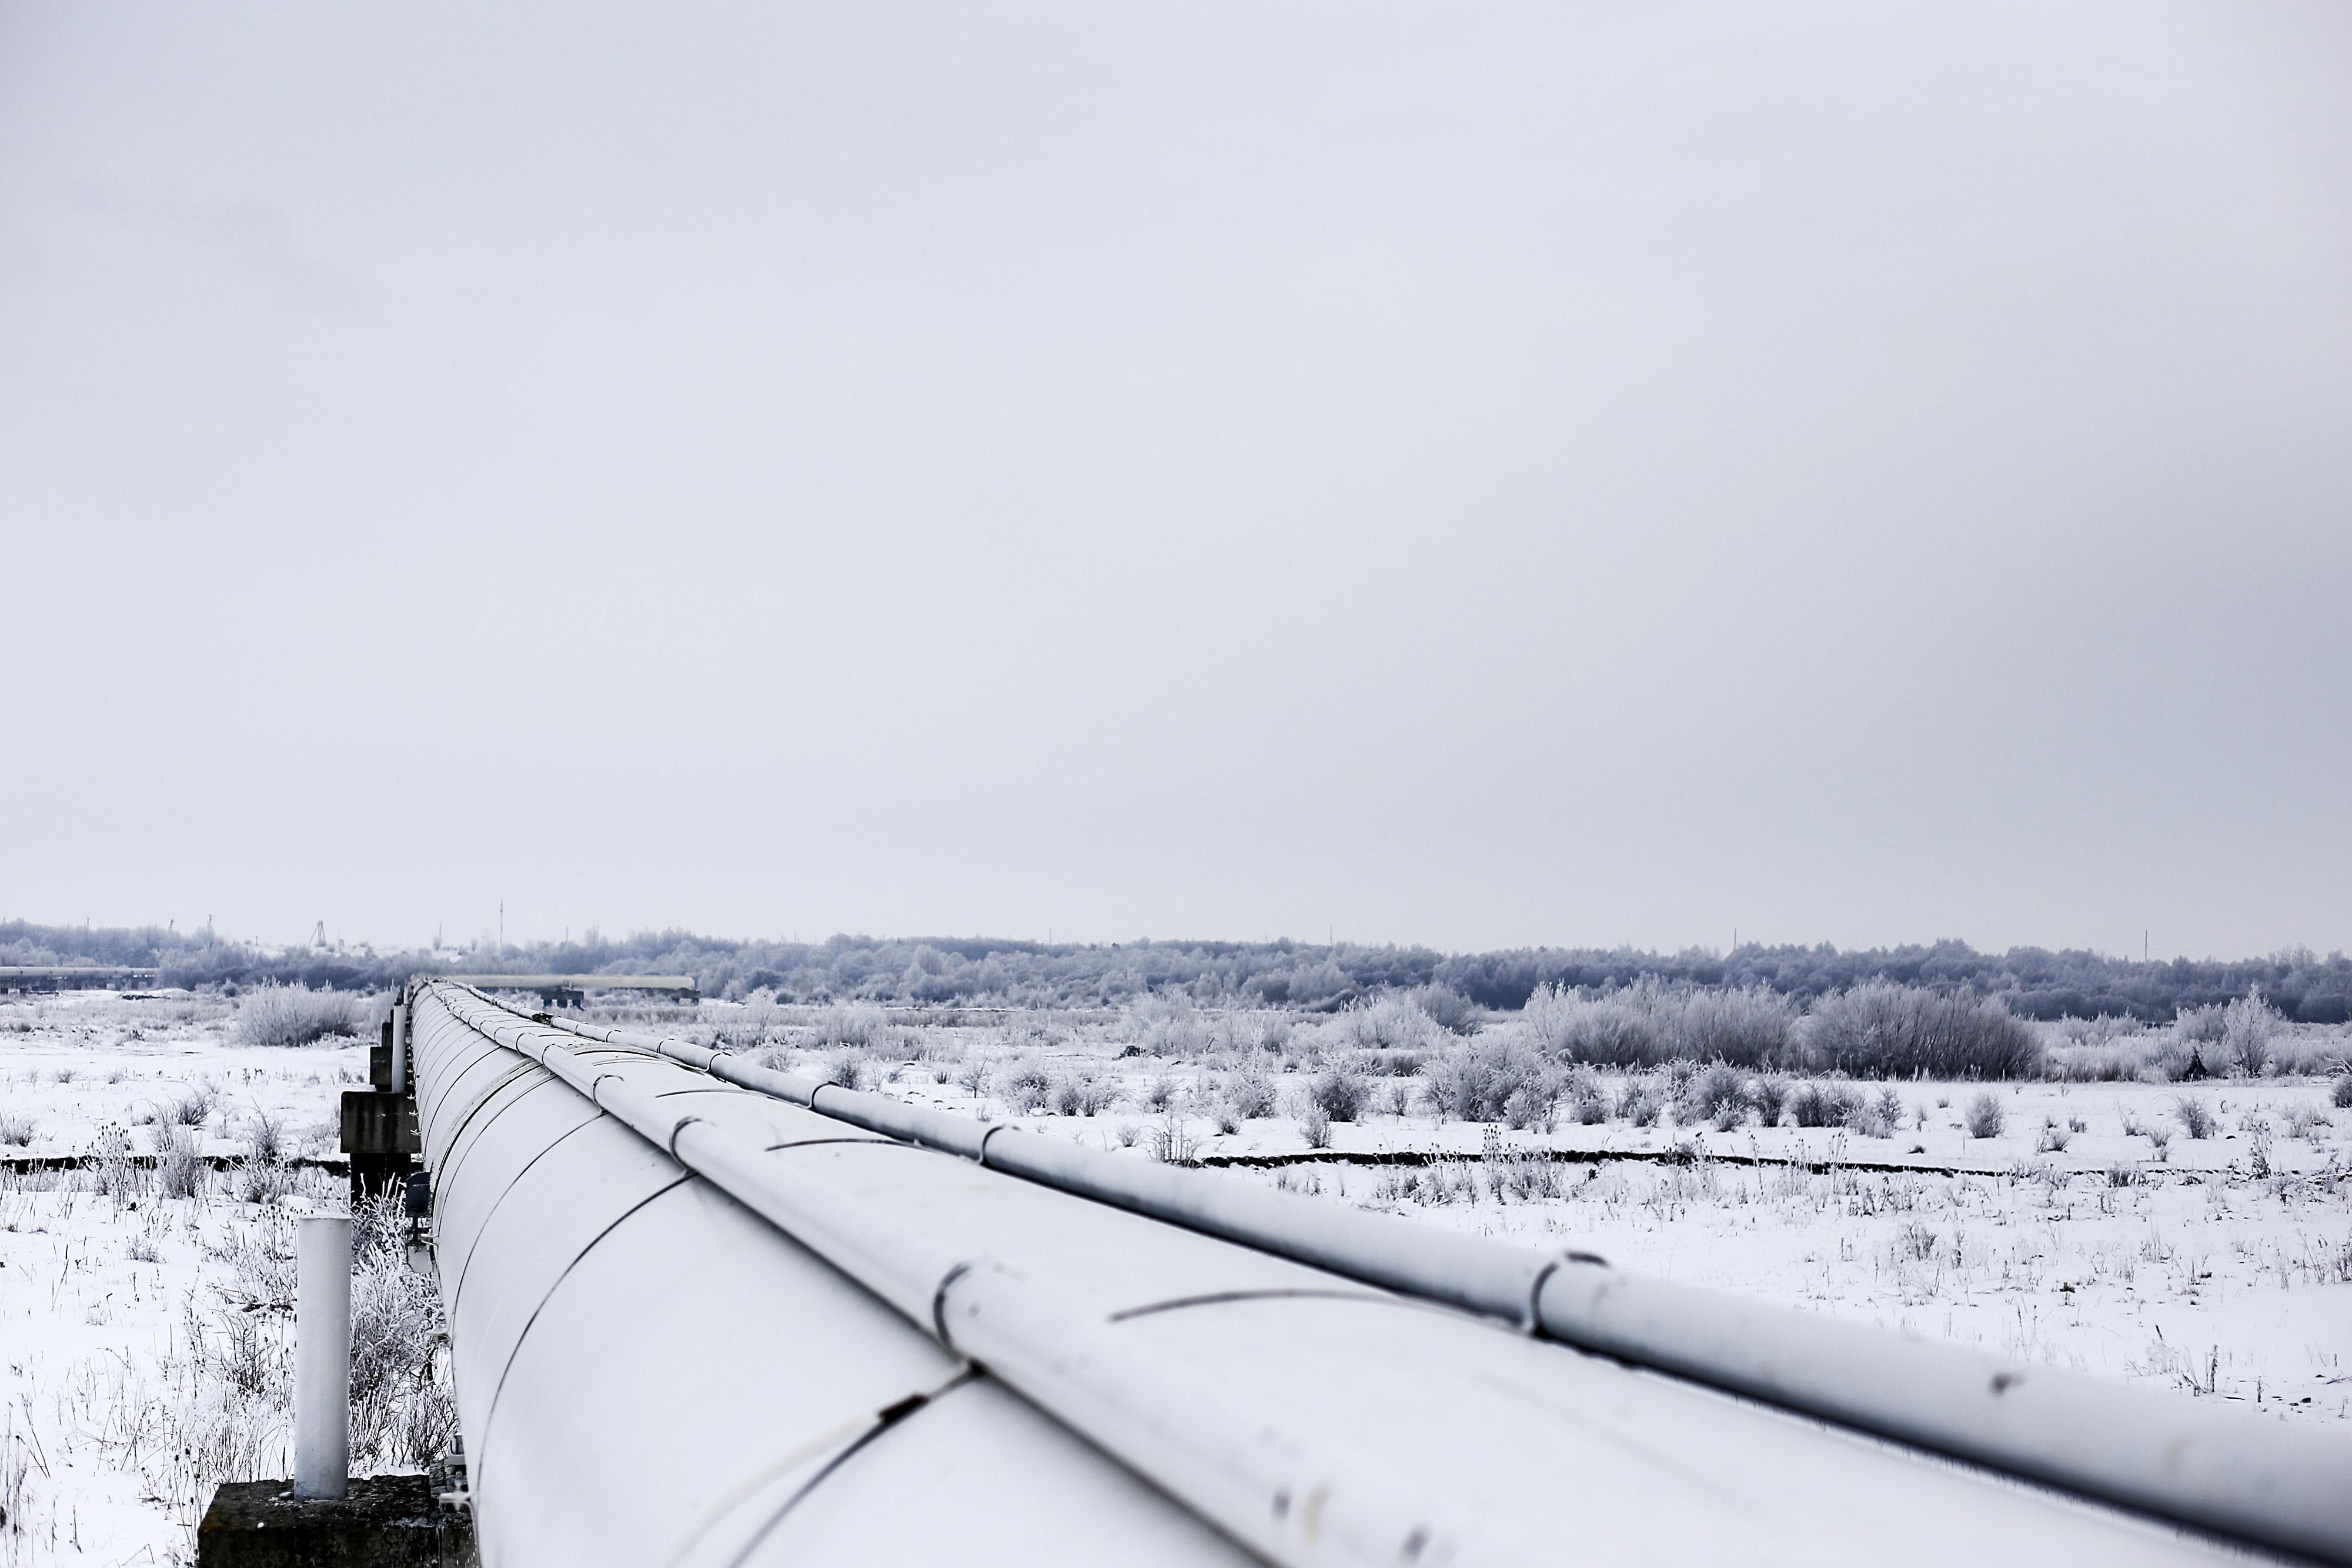 Russian And Ukrainian Gas Pipelines As Ukraine Gas Debt Raises Concern